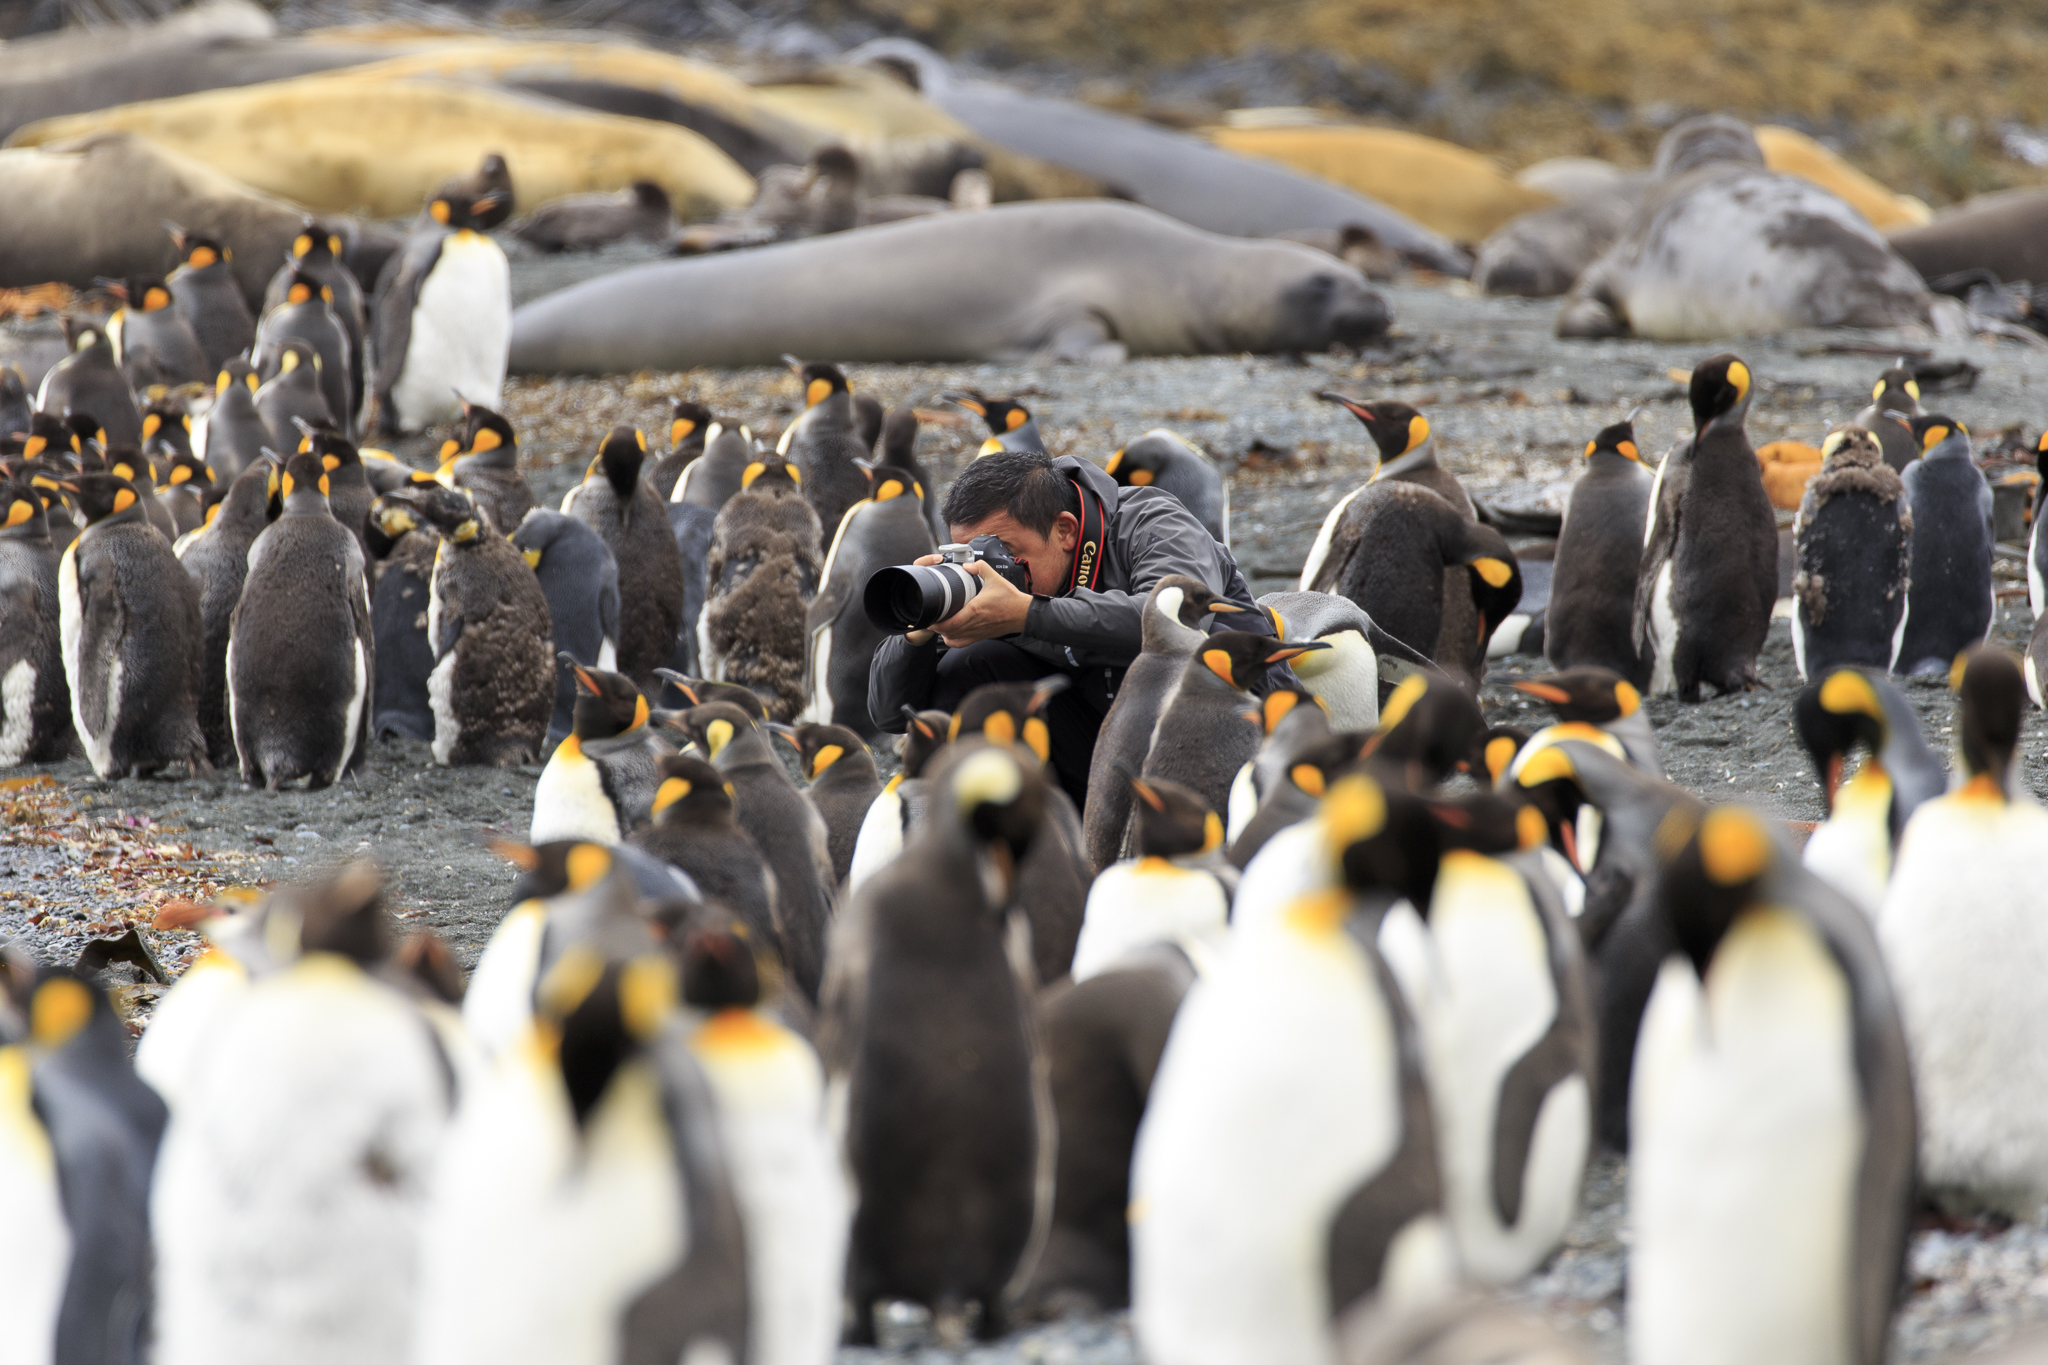 Atsushi among the King Penguins